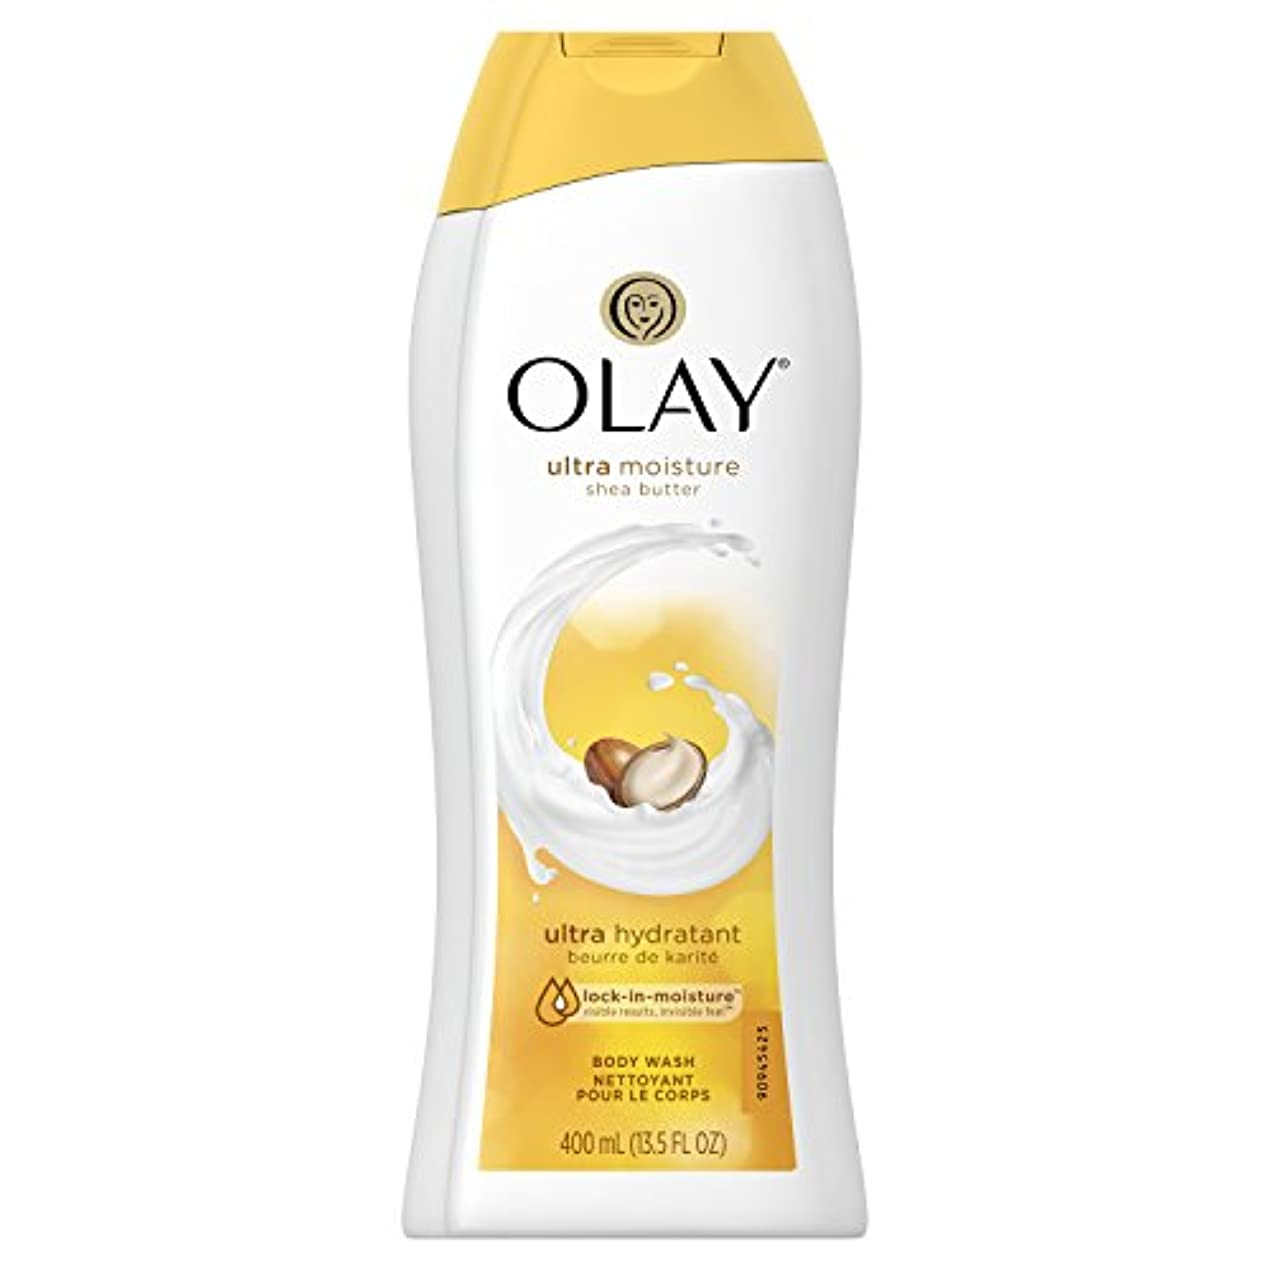 郵便屋さんナンセンス苛性Olay Ultra Moisture Moisturizing Body Wash With Shea Butter, 13.5 oz. 2本セット